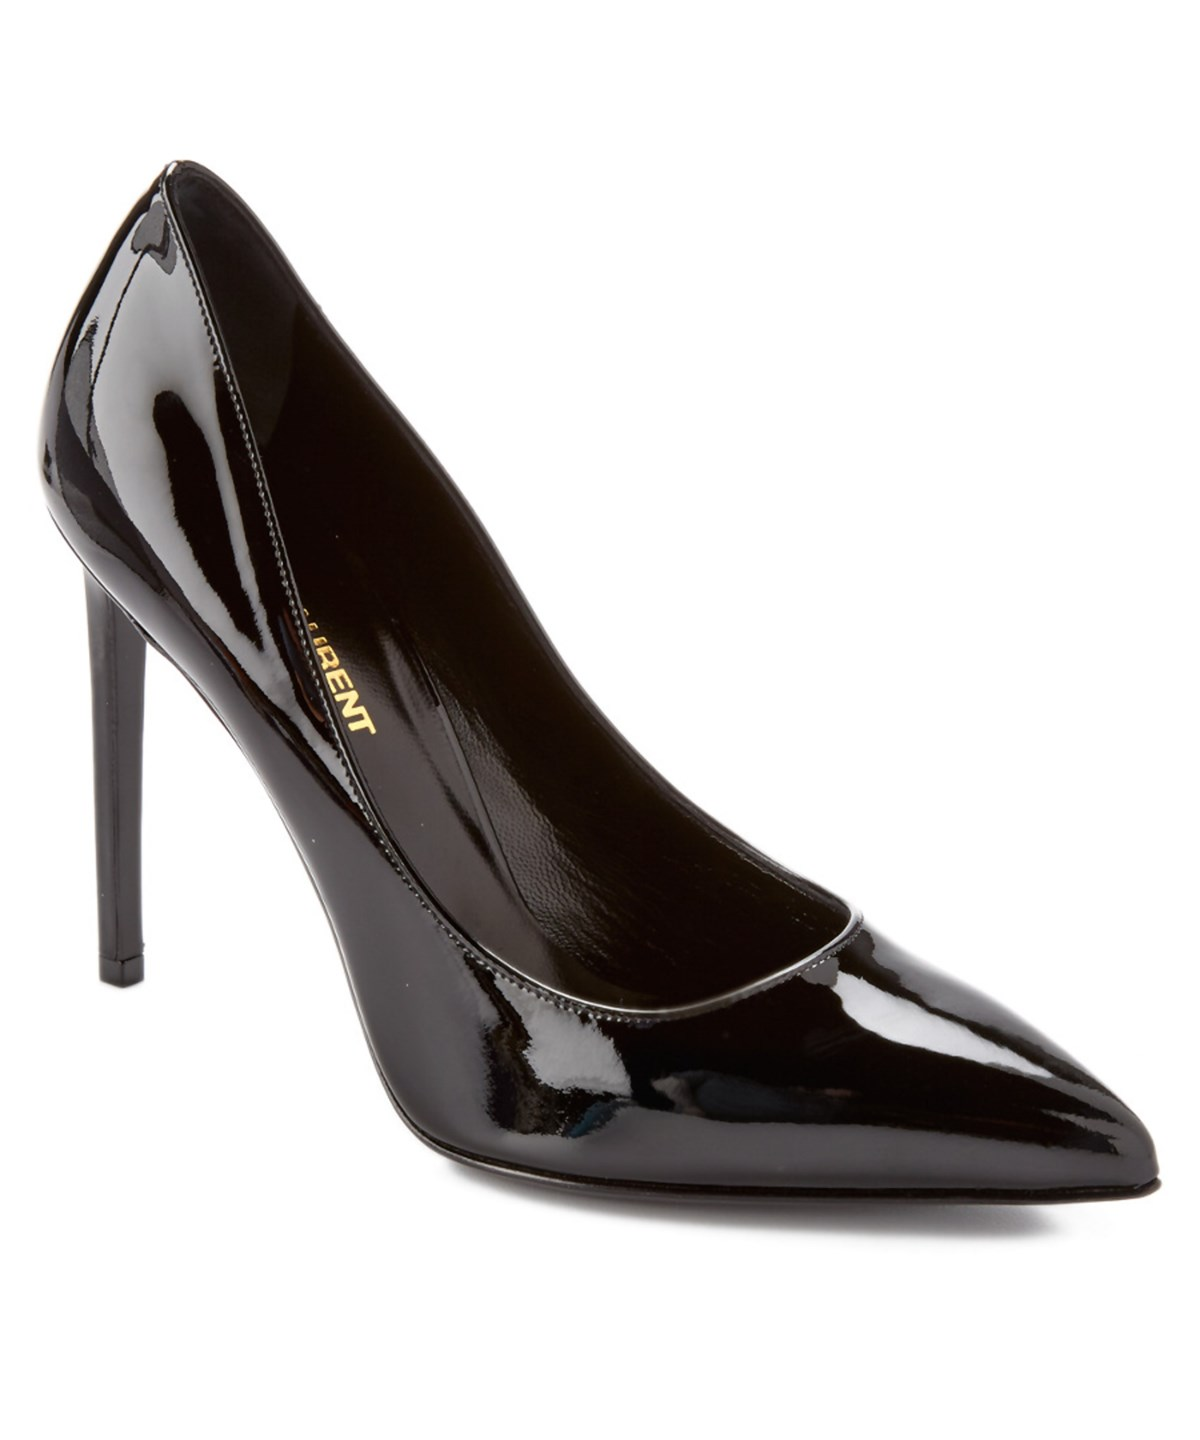 SAINT LAURENT Patent Leather 'Paris Skinny' Pumps at Bluefly